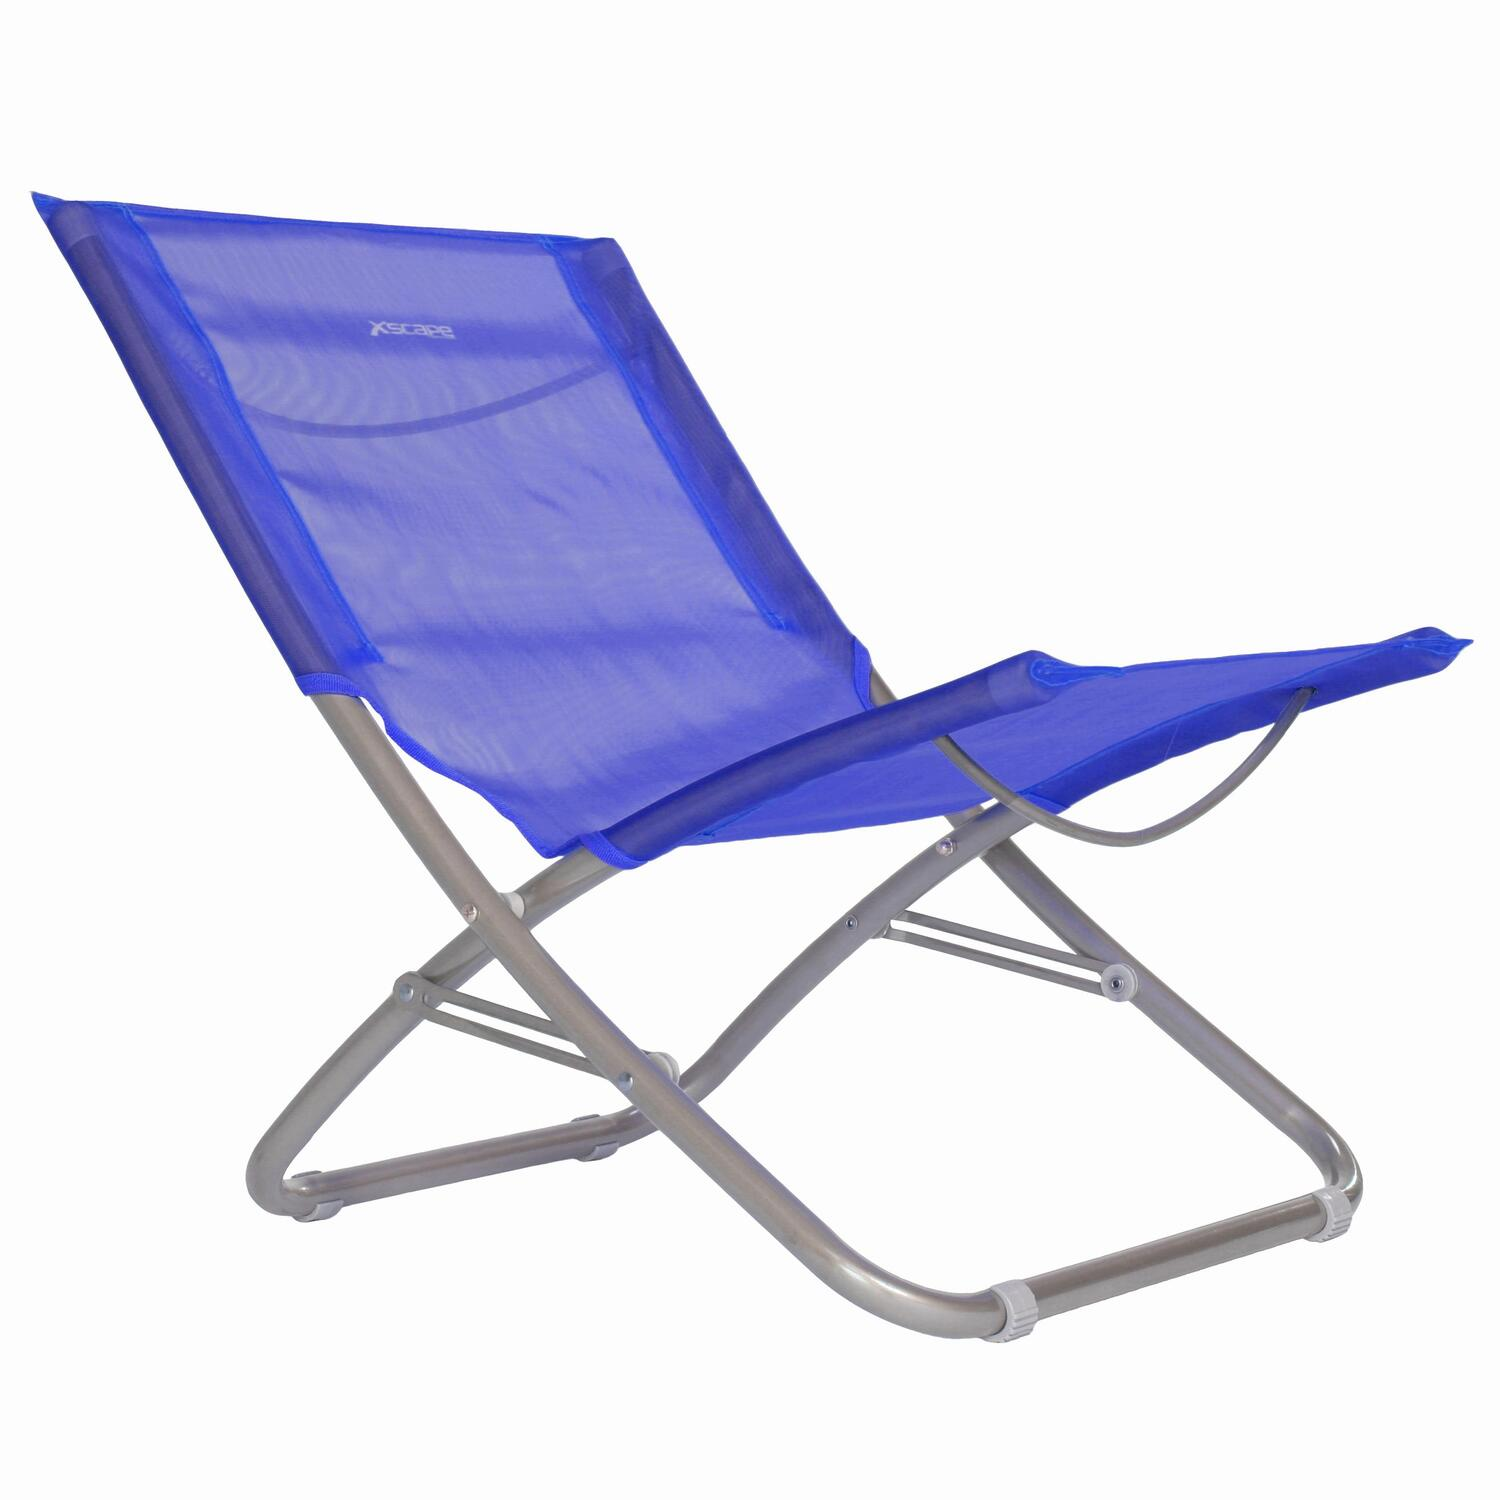 Xscape Sol Lite Folding Beach Chair by OJ merce $28 99